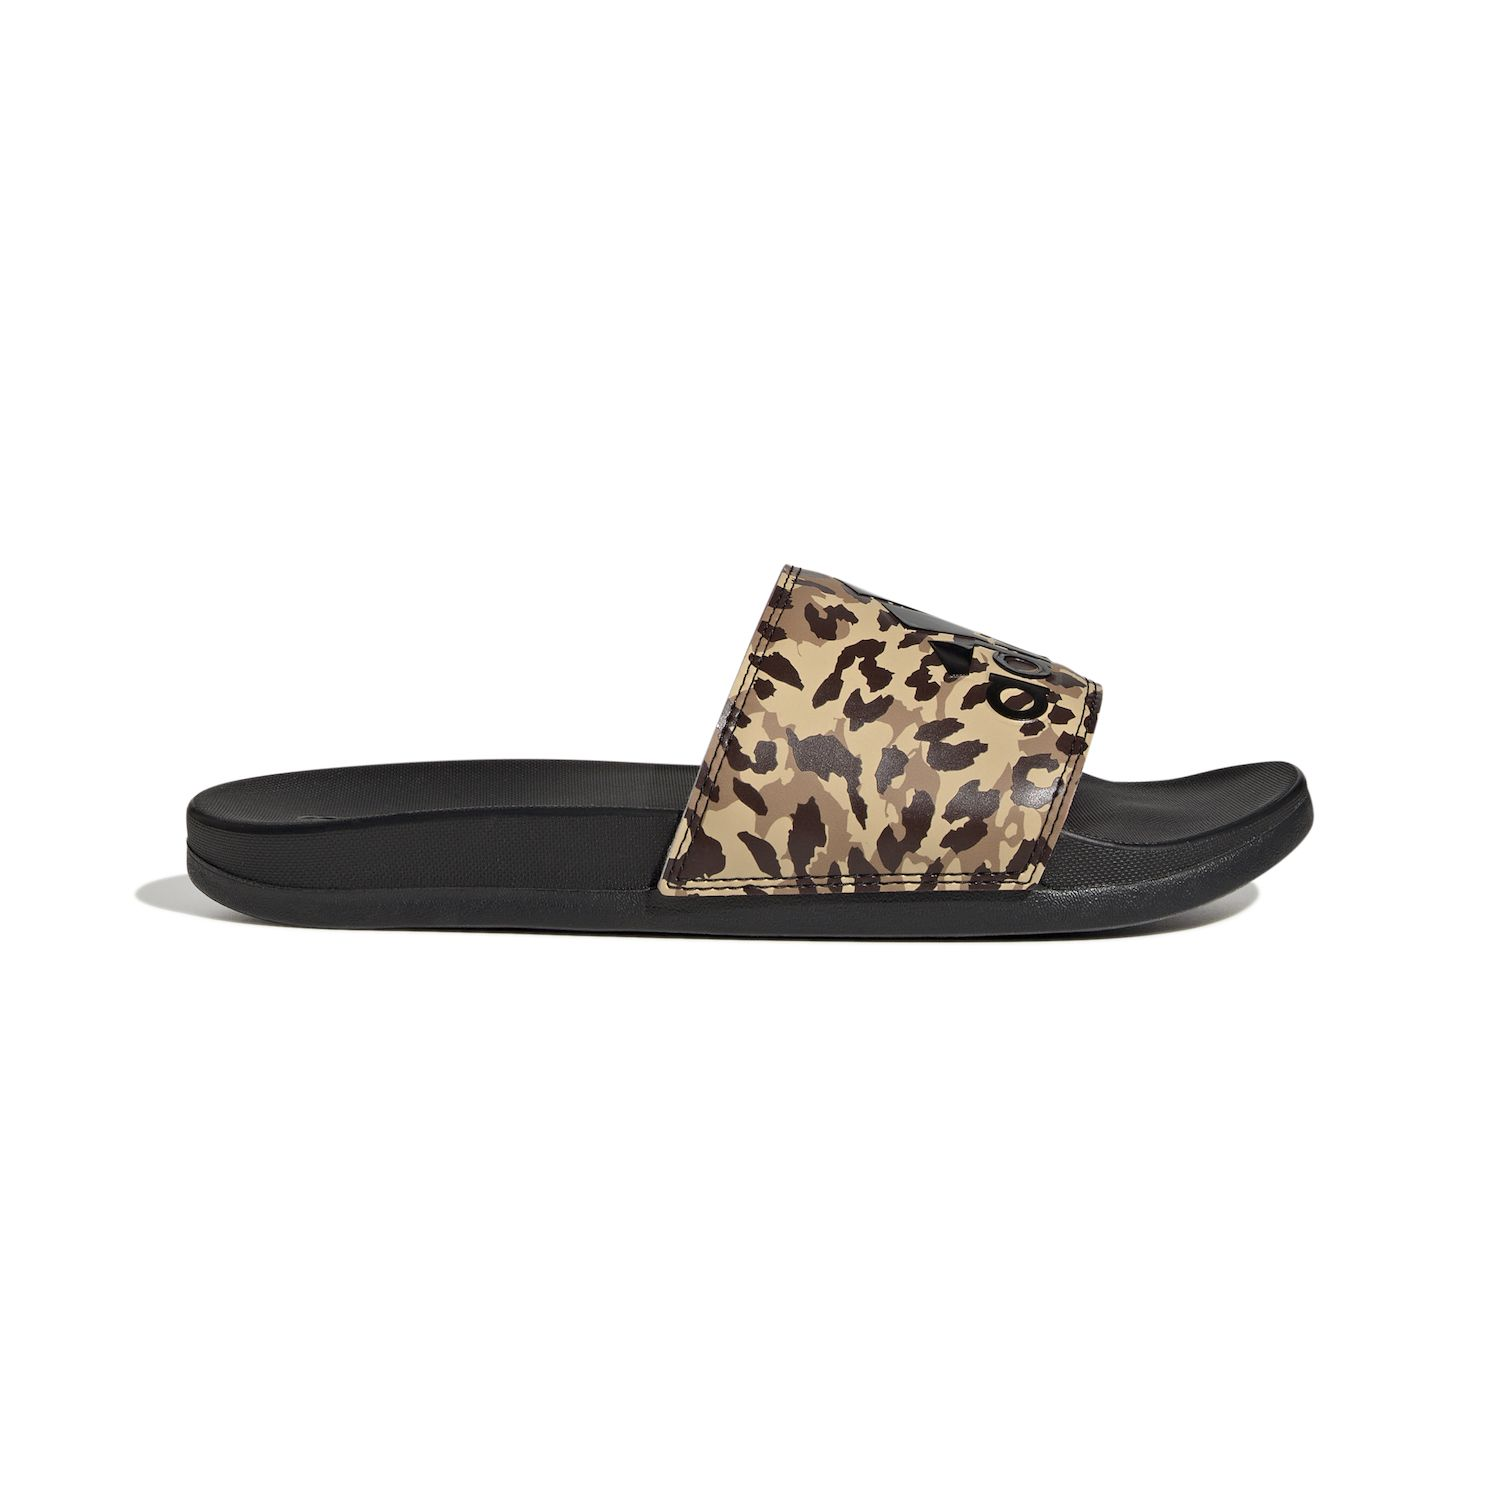 44fb2ef5067b Adidas Sandals - Shoes